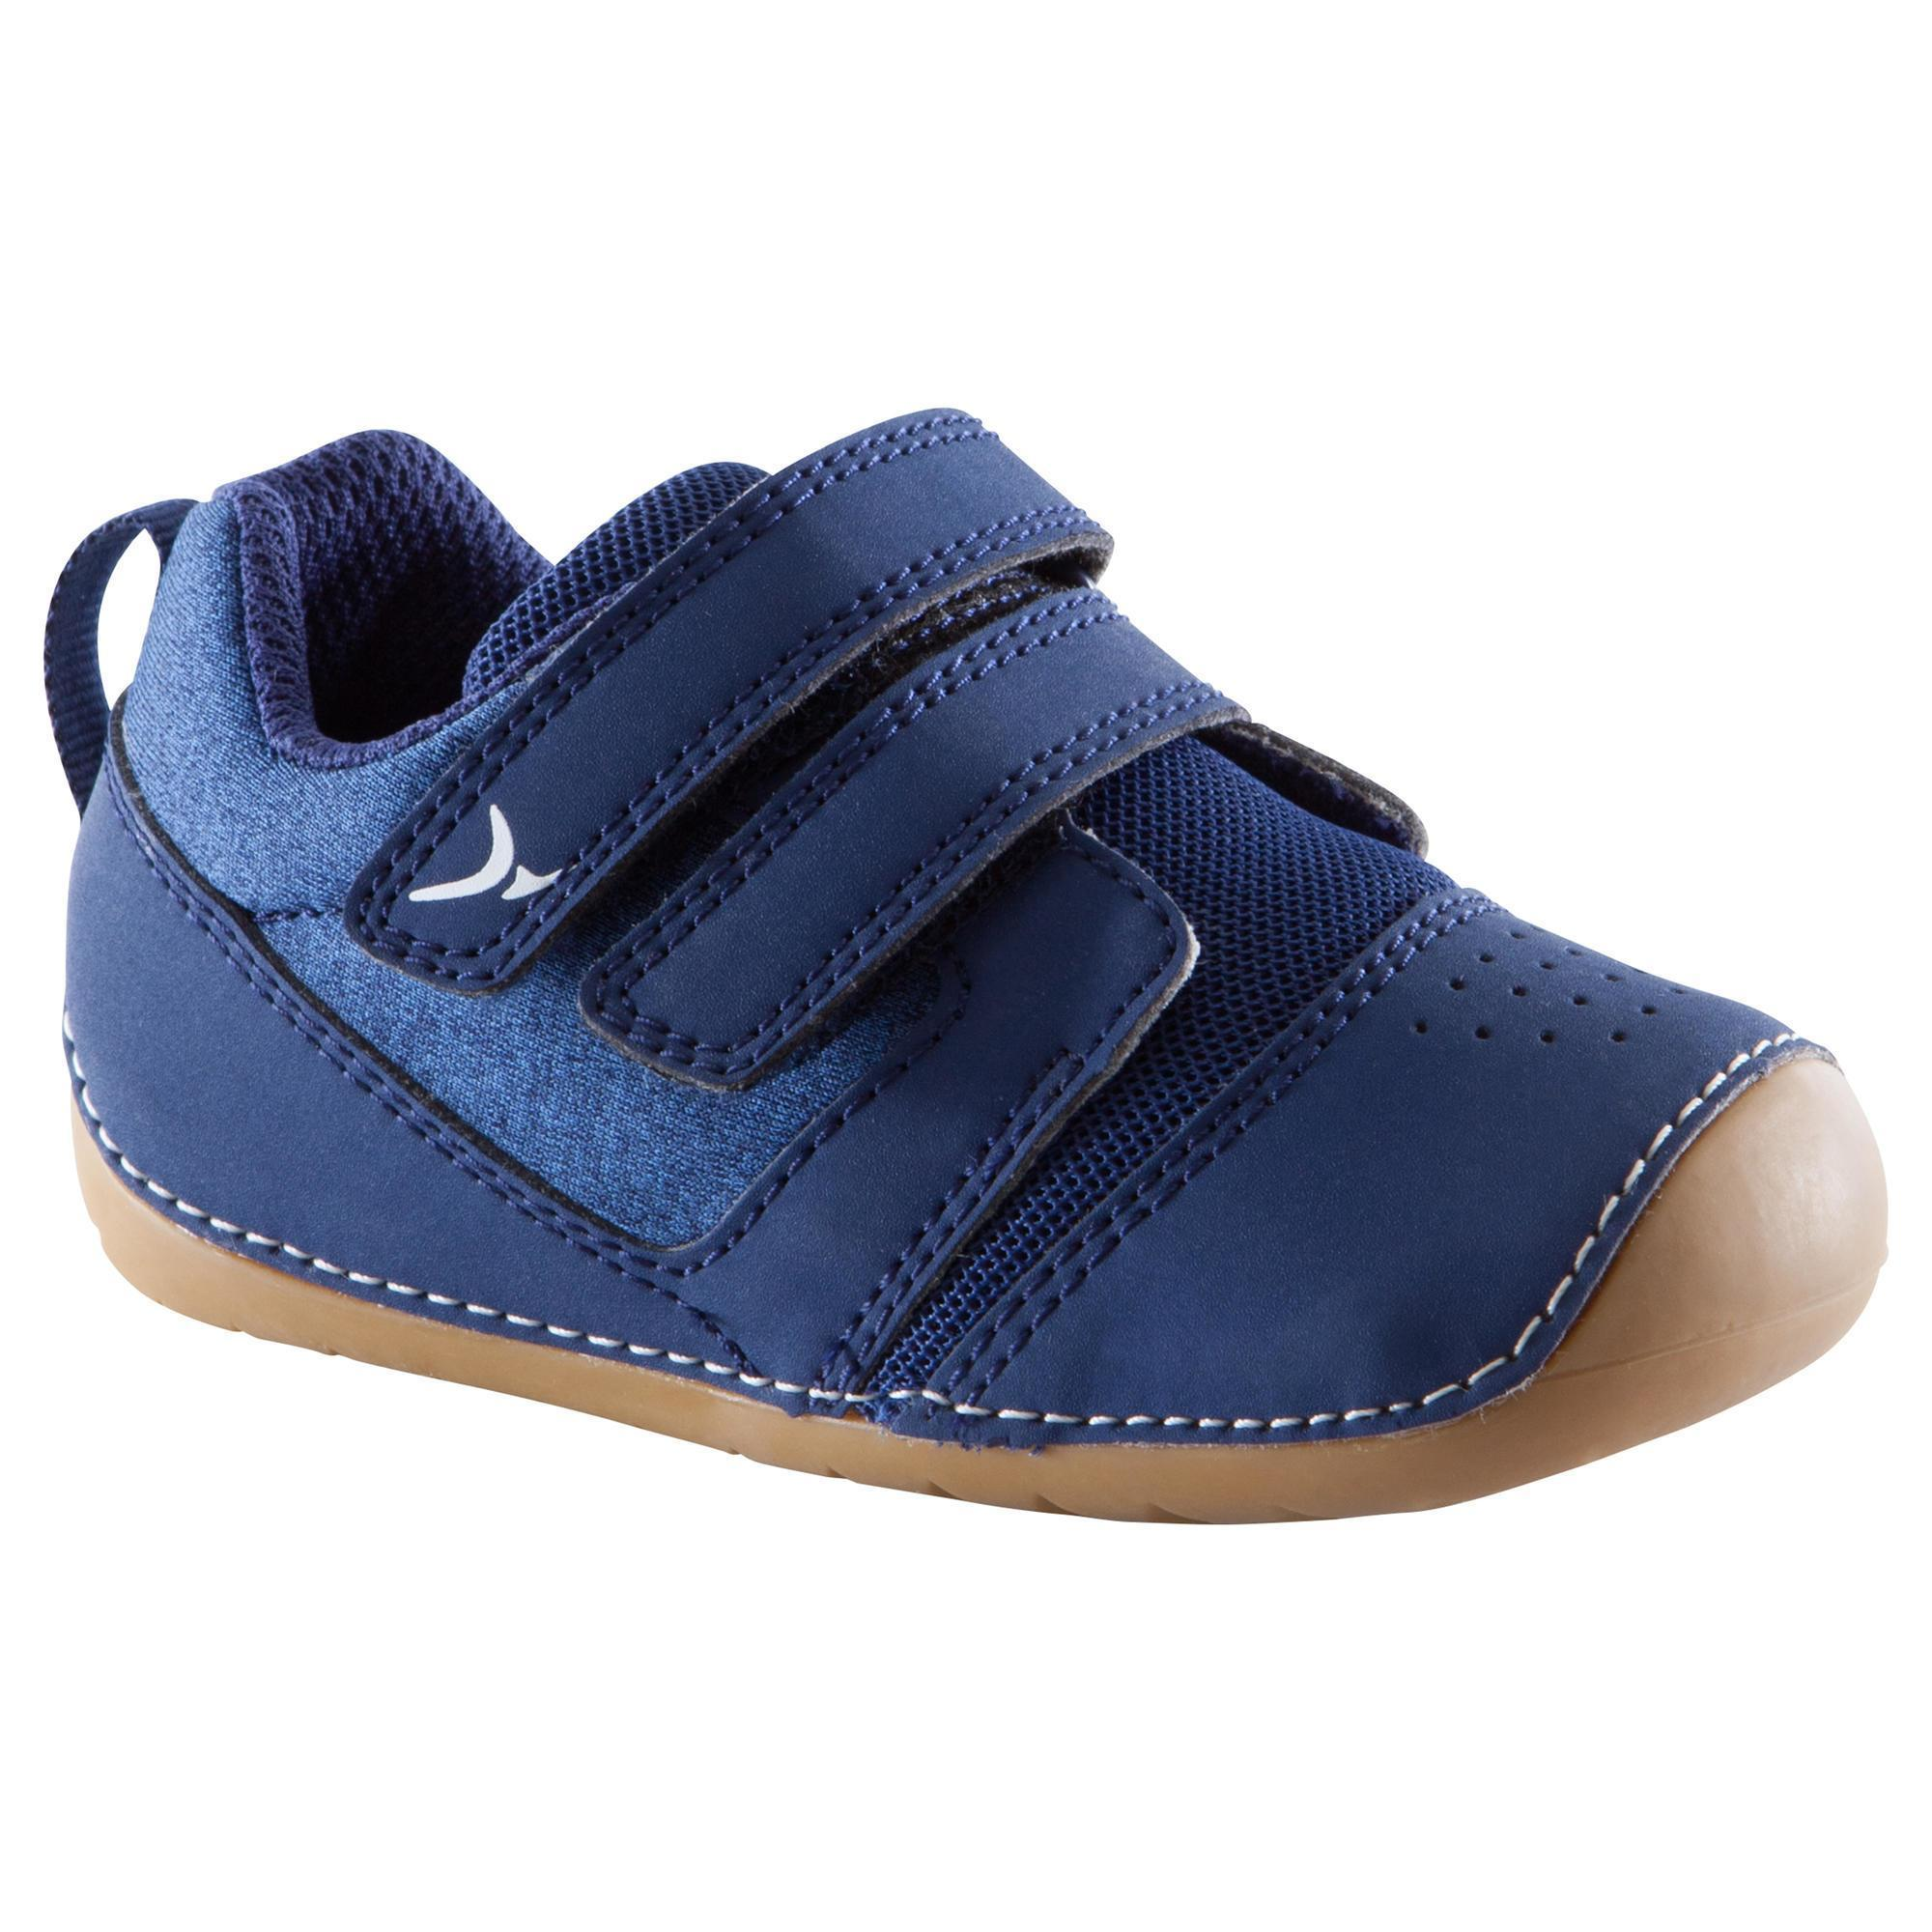 Dependable Boys Canvas Shoes Trainers Baby Boy Real Leather Insoles Size 3.5-7 Uk Toddler Clothing, Shoes & Accessories